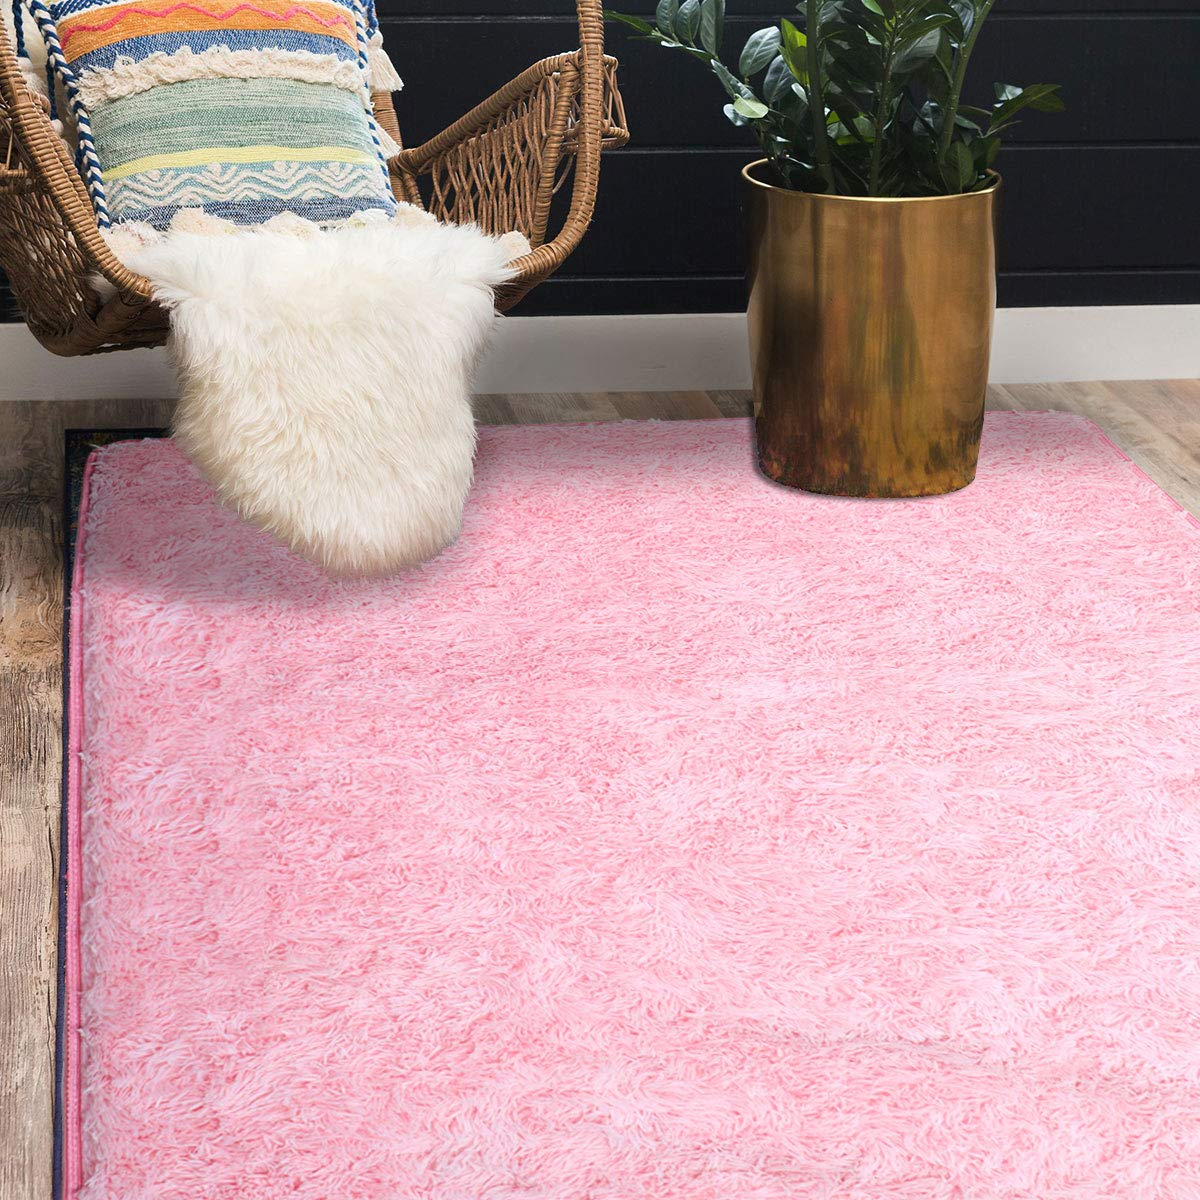 Supmaker Soft Indoor Modern Area Rugs Fluffy Living Room Carpets Suitable for Children Bedroom Decor Nursery Rugs 4 Feet by 5.3 Feet